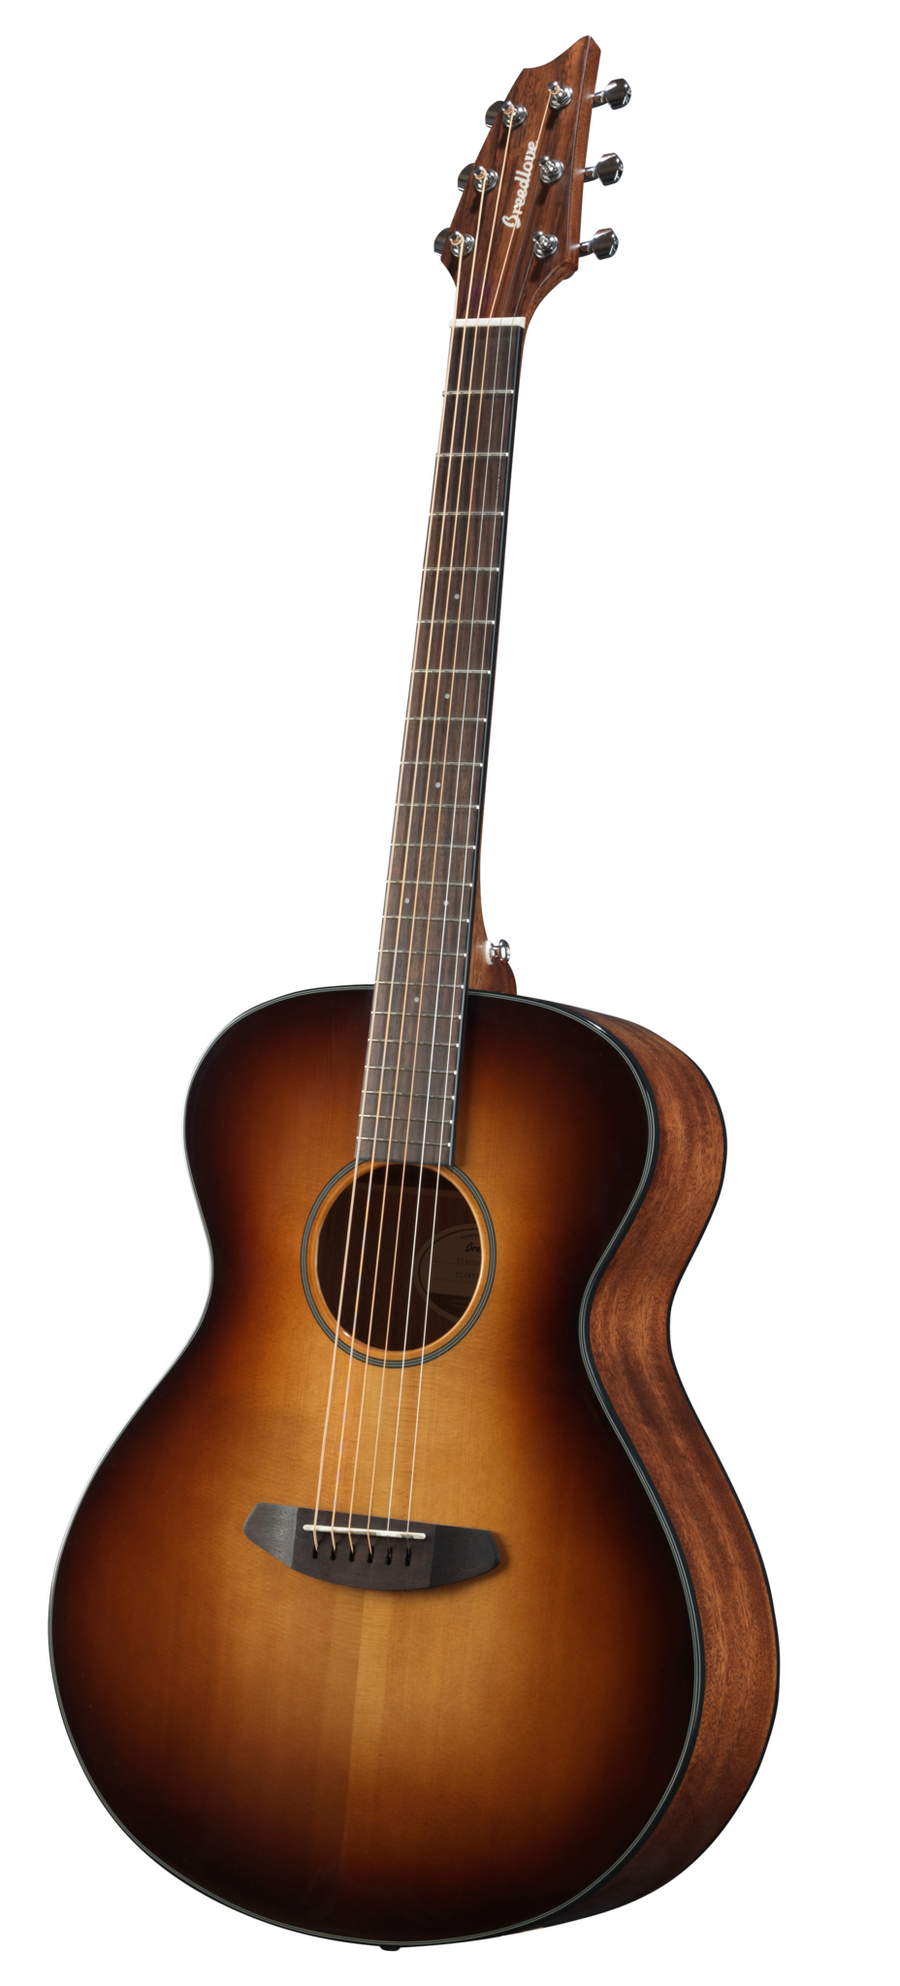 Breedlove Discovery Concert Sunburst Sitka Spruce/Mahogany Acoustic Guitar